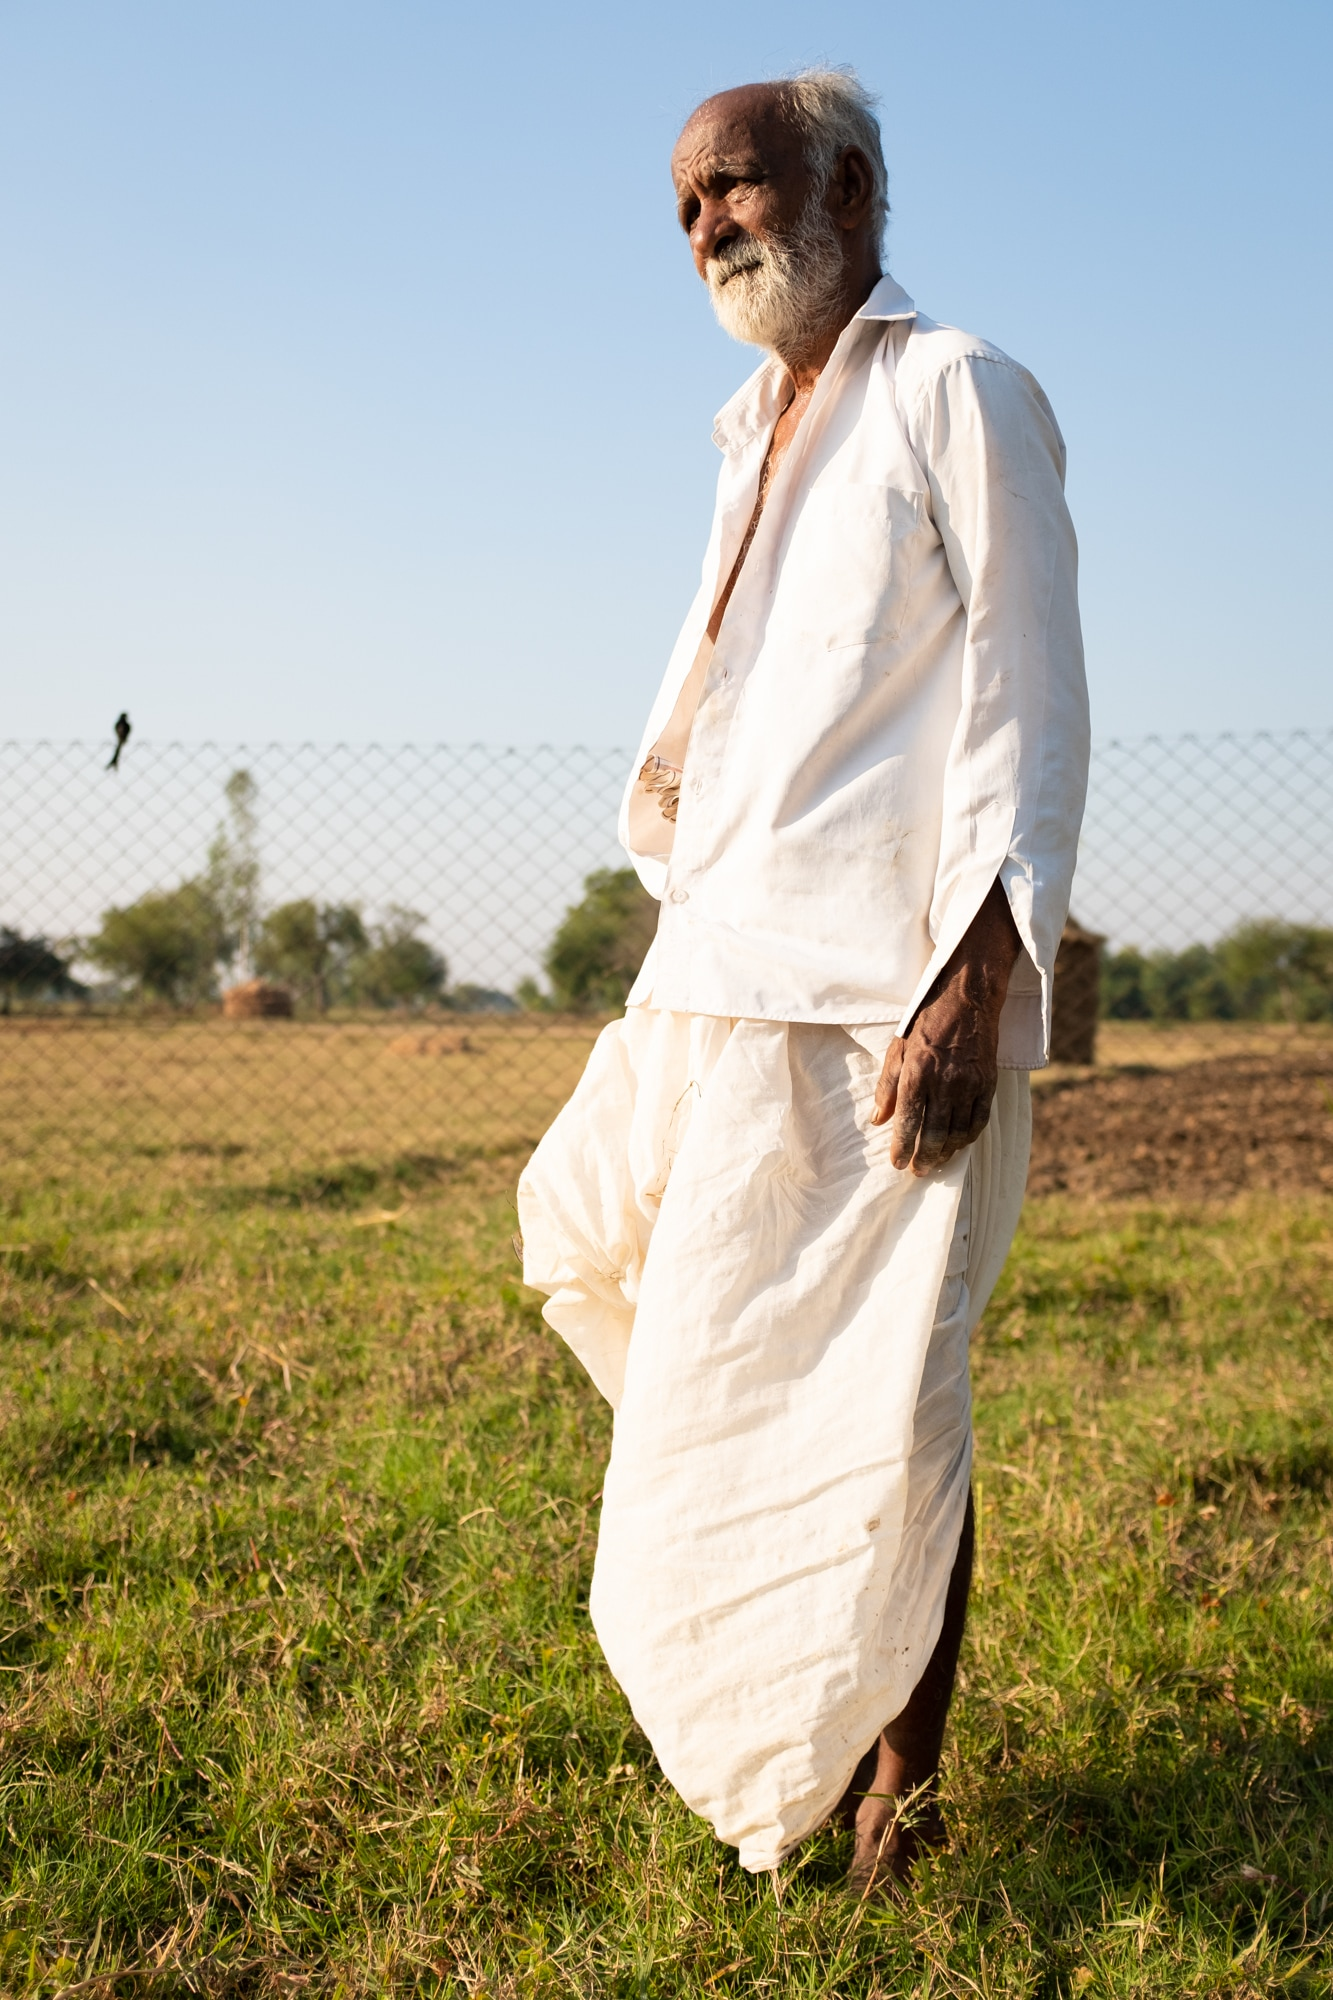 A man photographed in Matar village, some 40 km south of Ahmedabad.